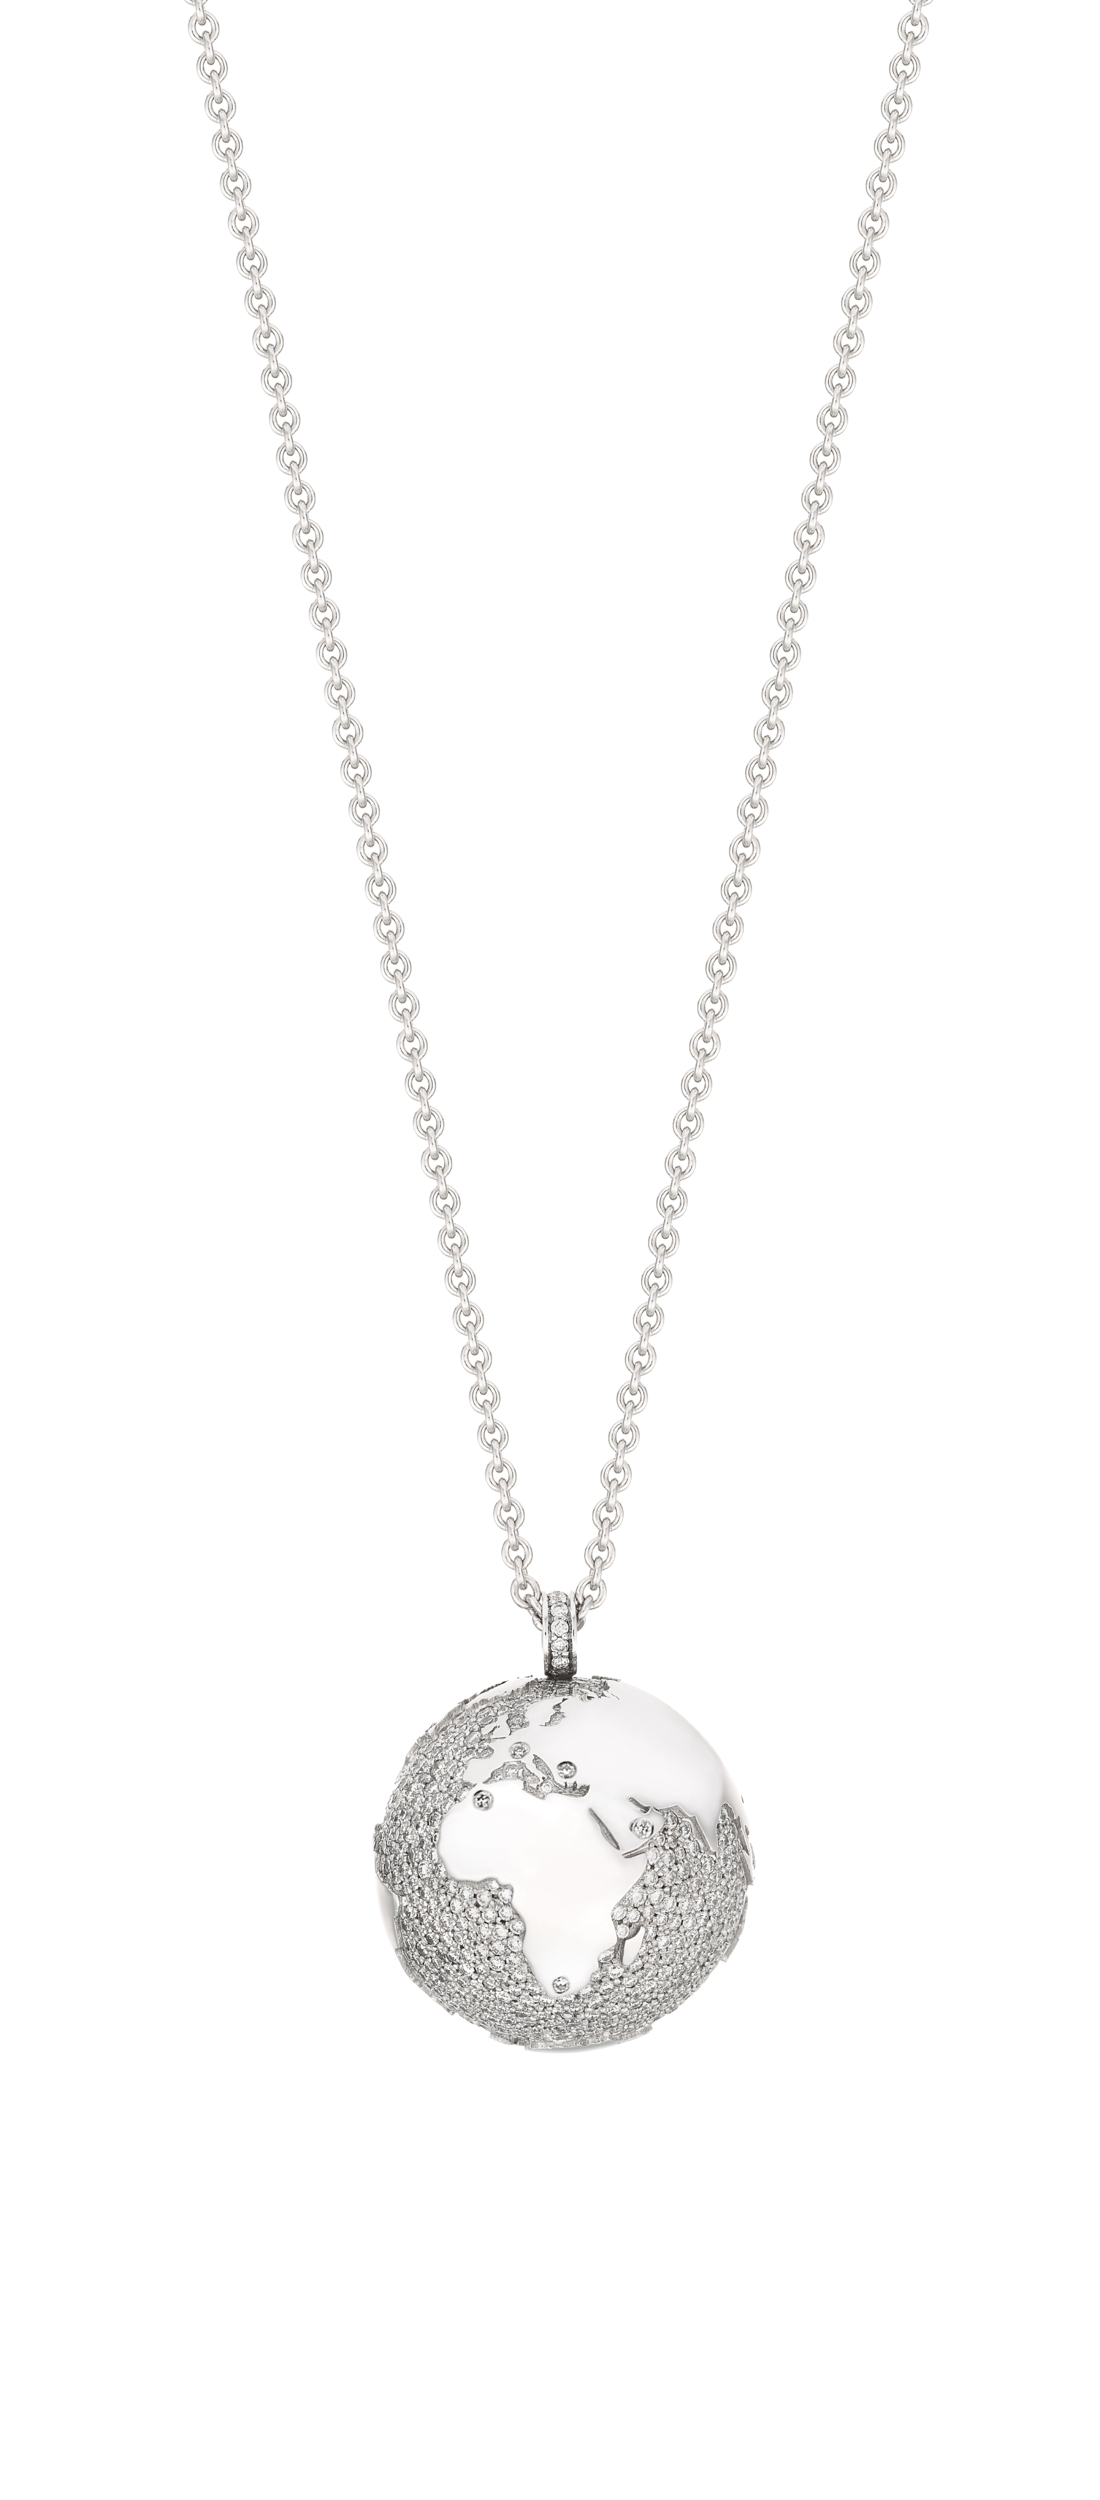 Necklace MY WORLD white gold and diamond earth pendant 23 mm chain 90 cm limited edition